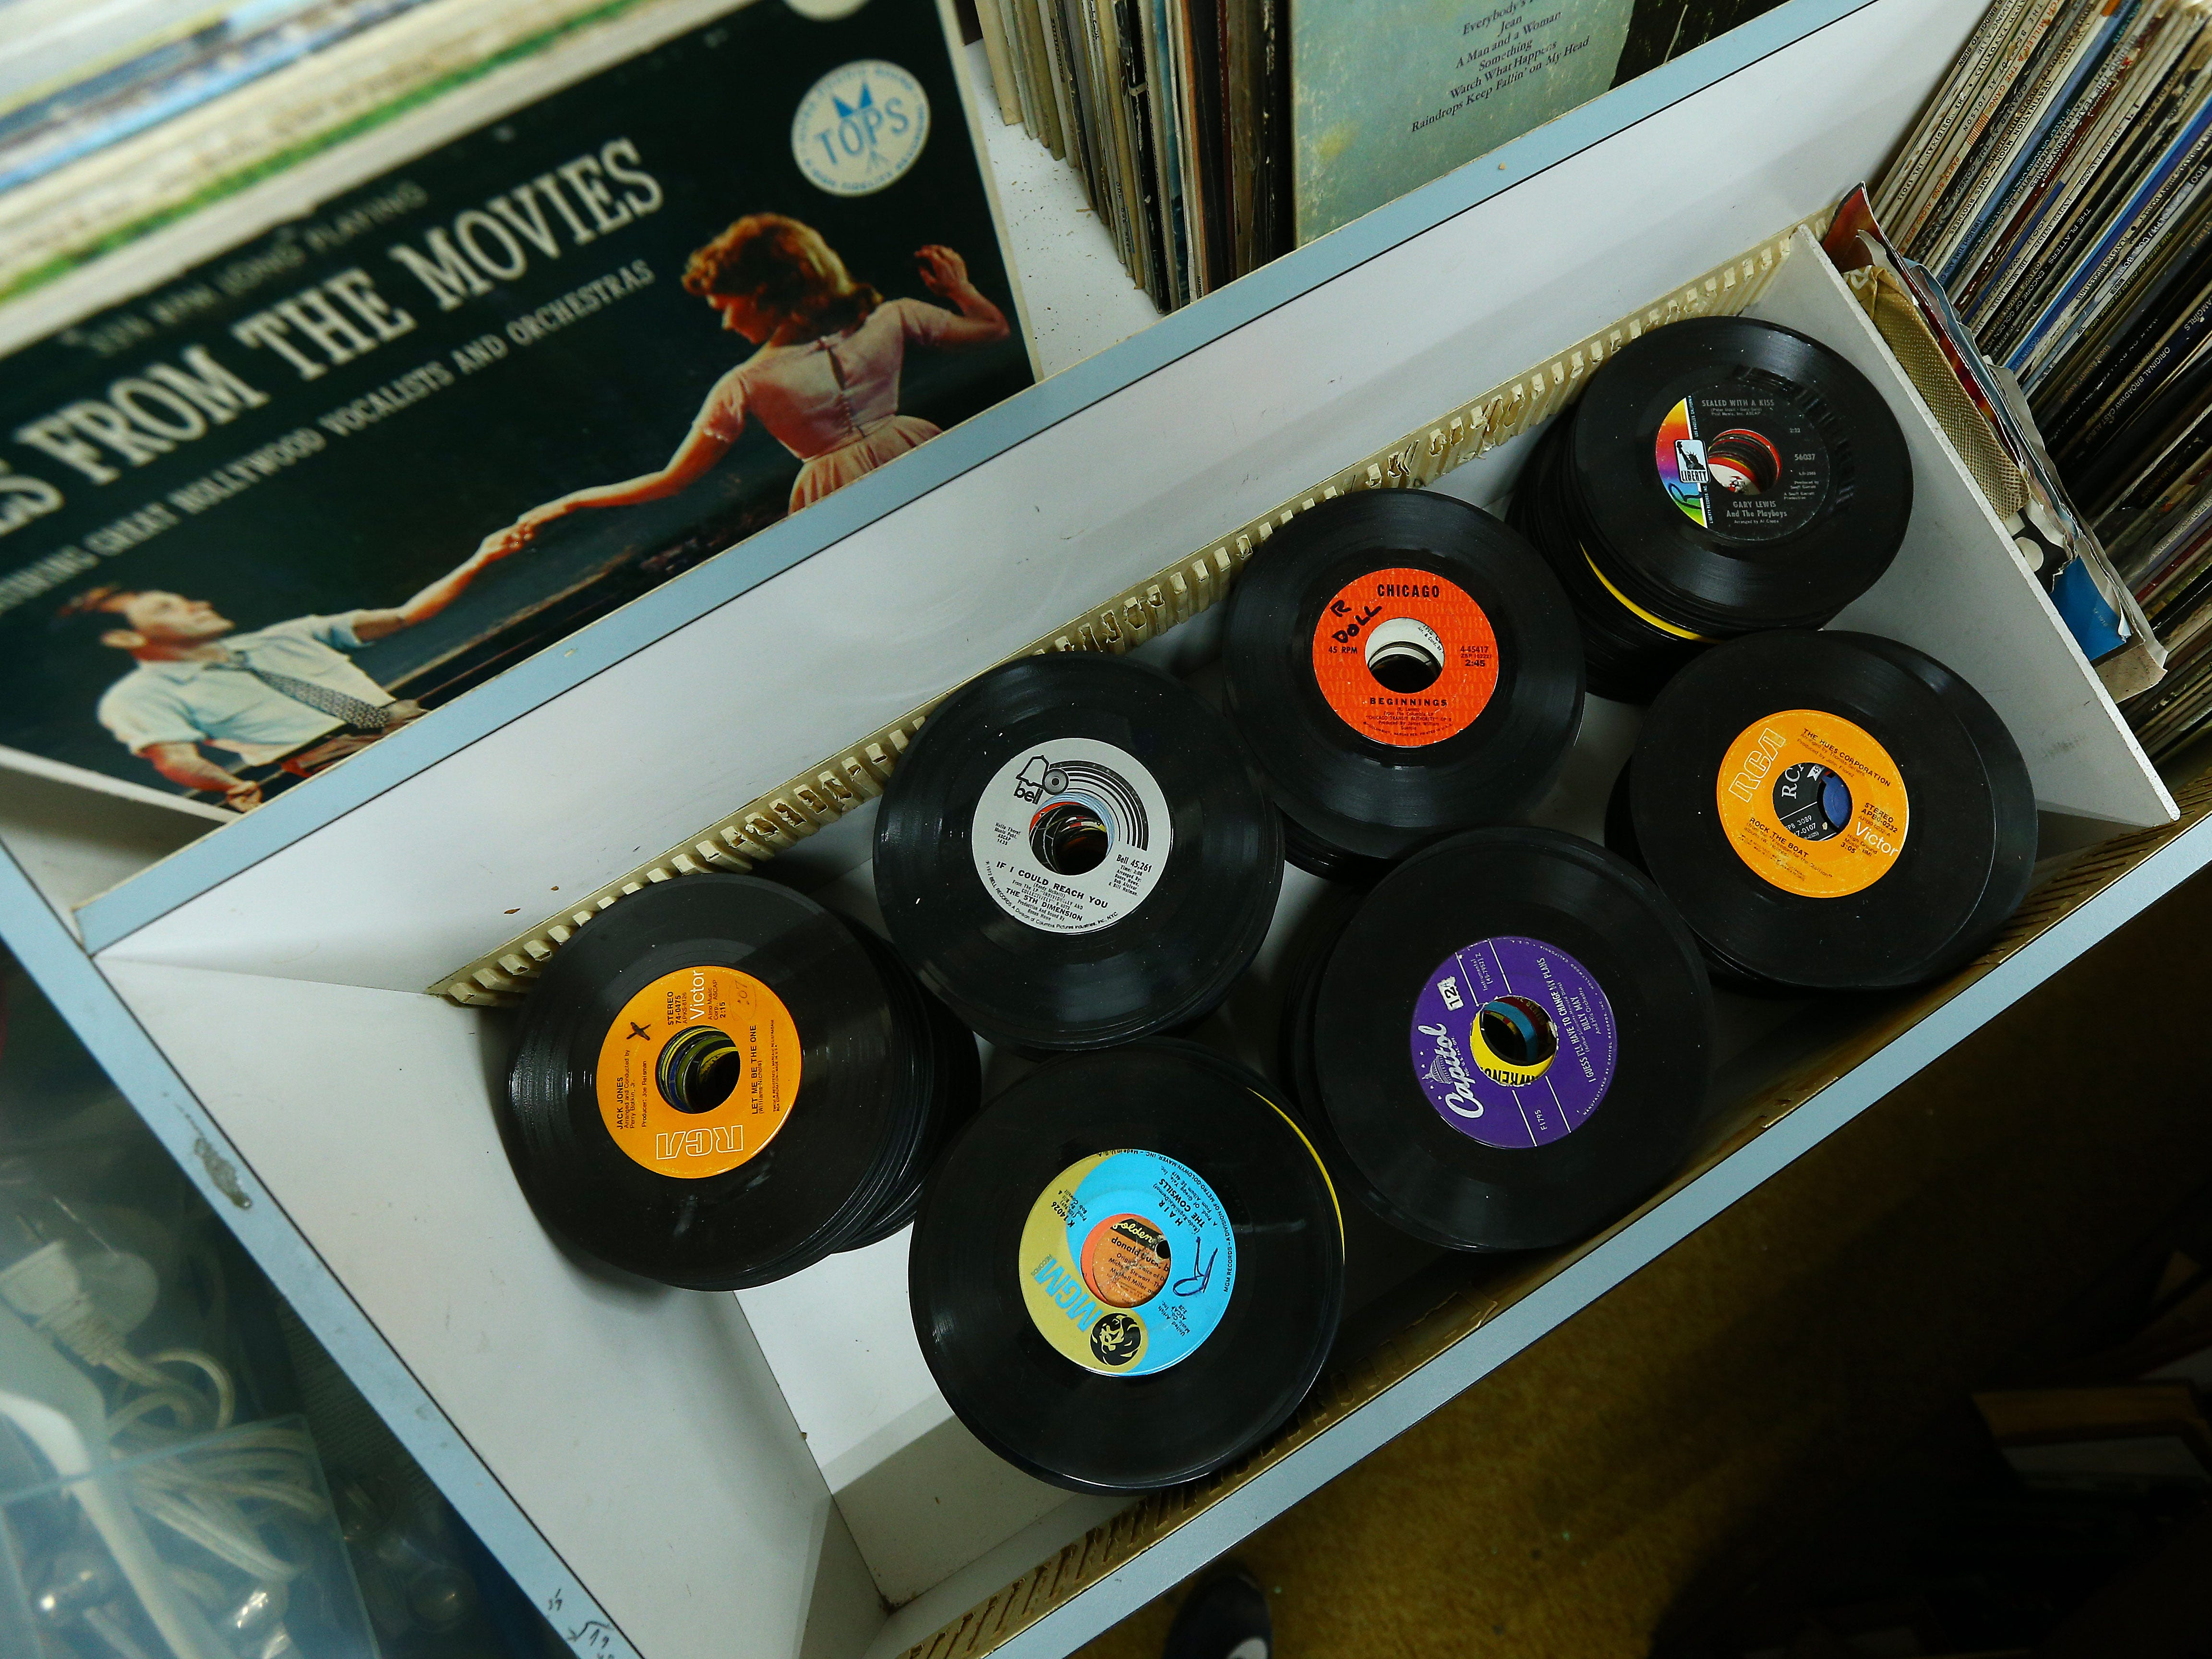 45's and LP's for sale at the Morris Thrift Store in Dover, open for 40 years will close at the end of the year.The most recent owner Stan and Maria Bush are retiring and have sold it, the new owner will not keep it as a thrift store. September 28, 2018, Dover, NJ